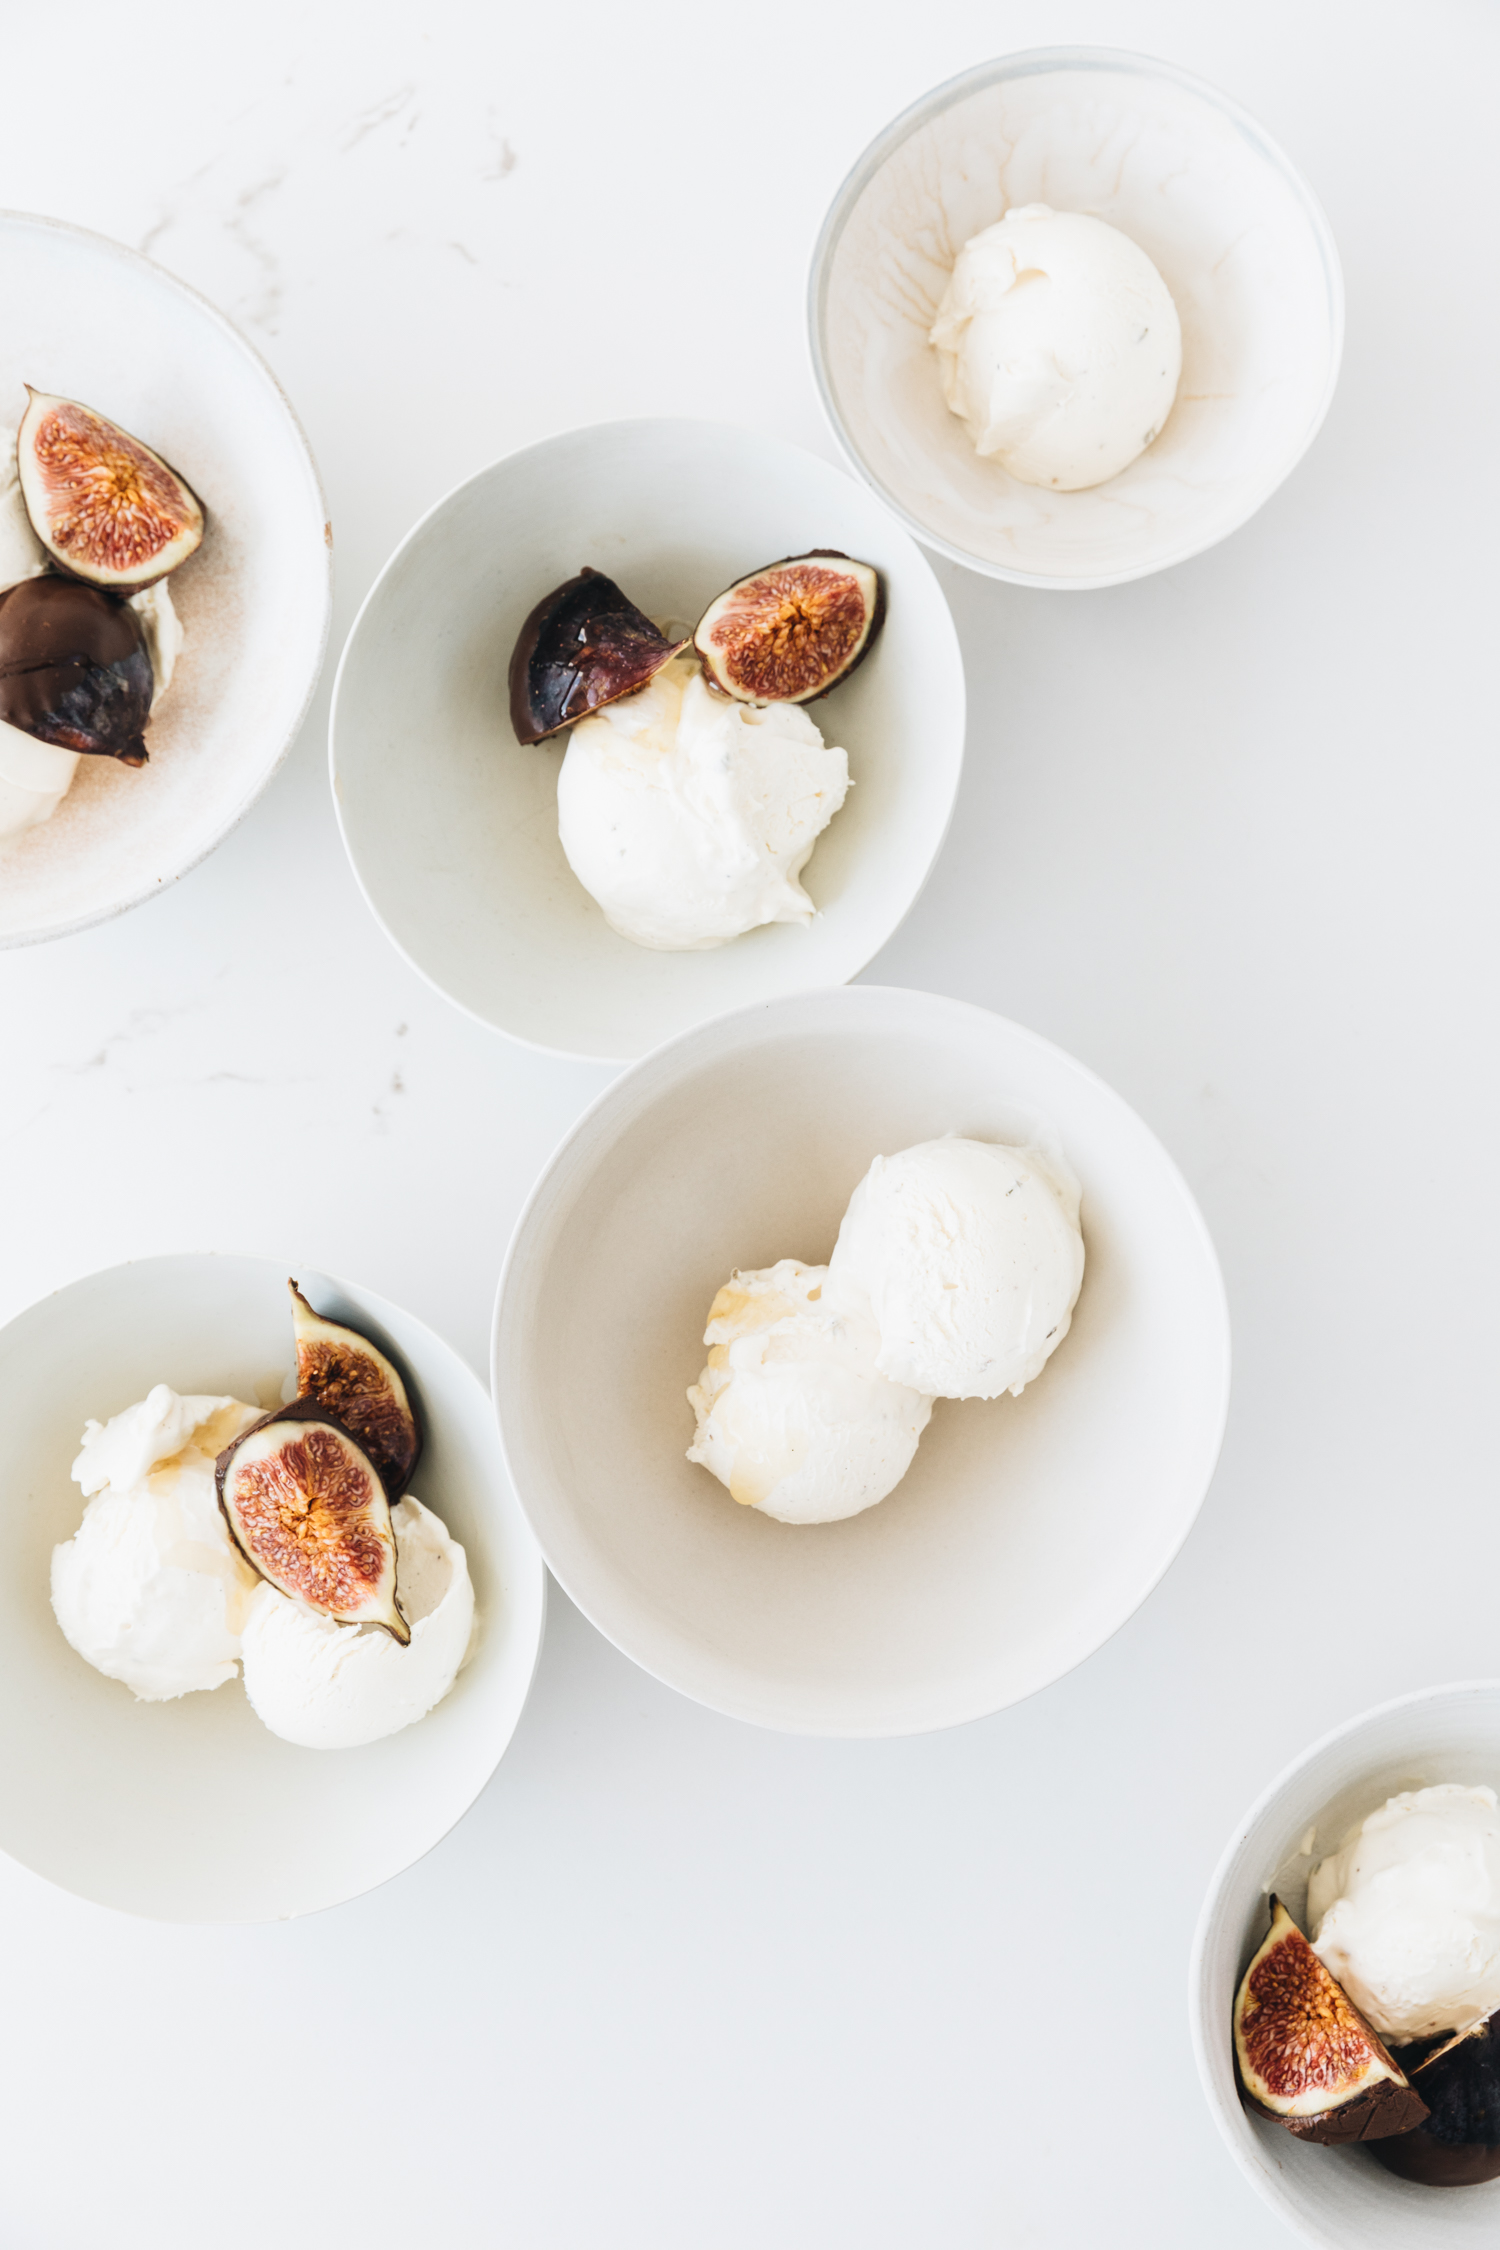 sweet honey and lavender salt ice cream with chocolate dipped figs